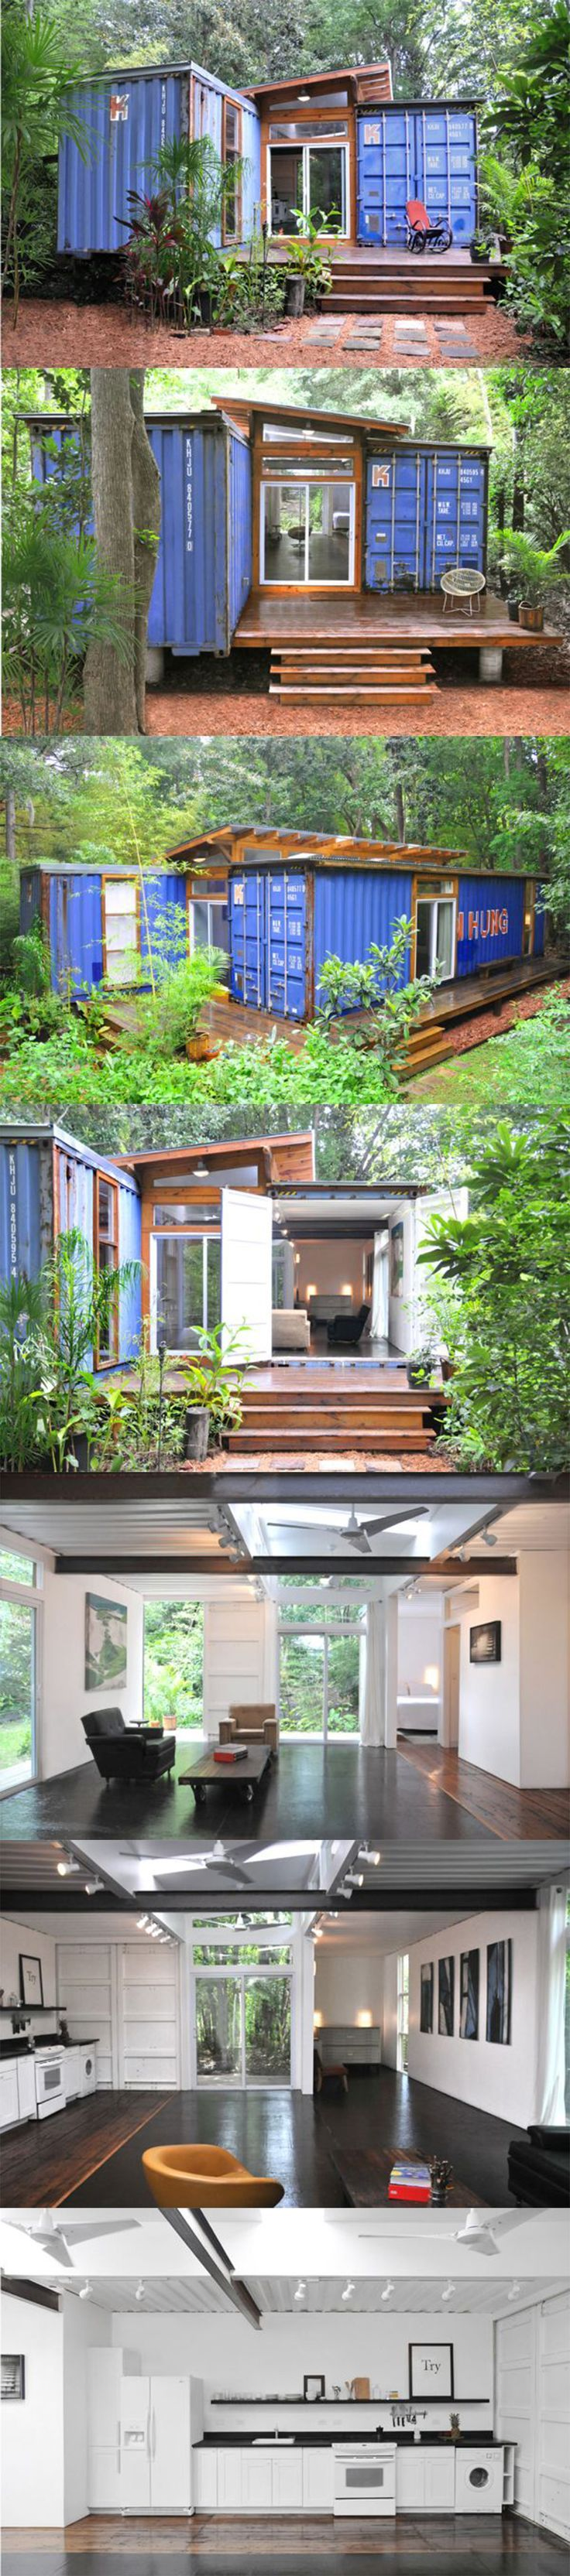 Shipping Container Home with plans. I love the juxtaposition of the natural setting and the rough, industrial look of the shipping containers - especially when they're painted white!: